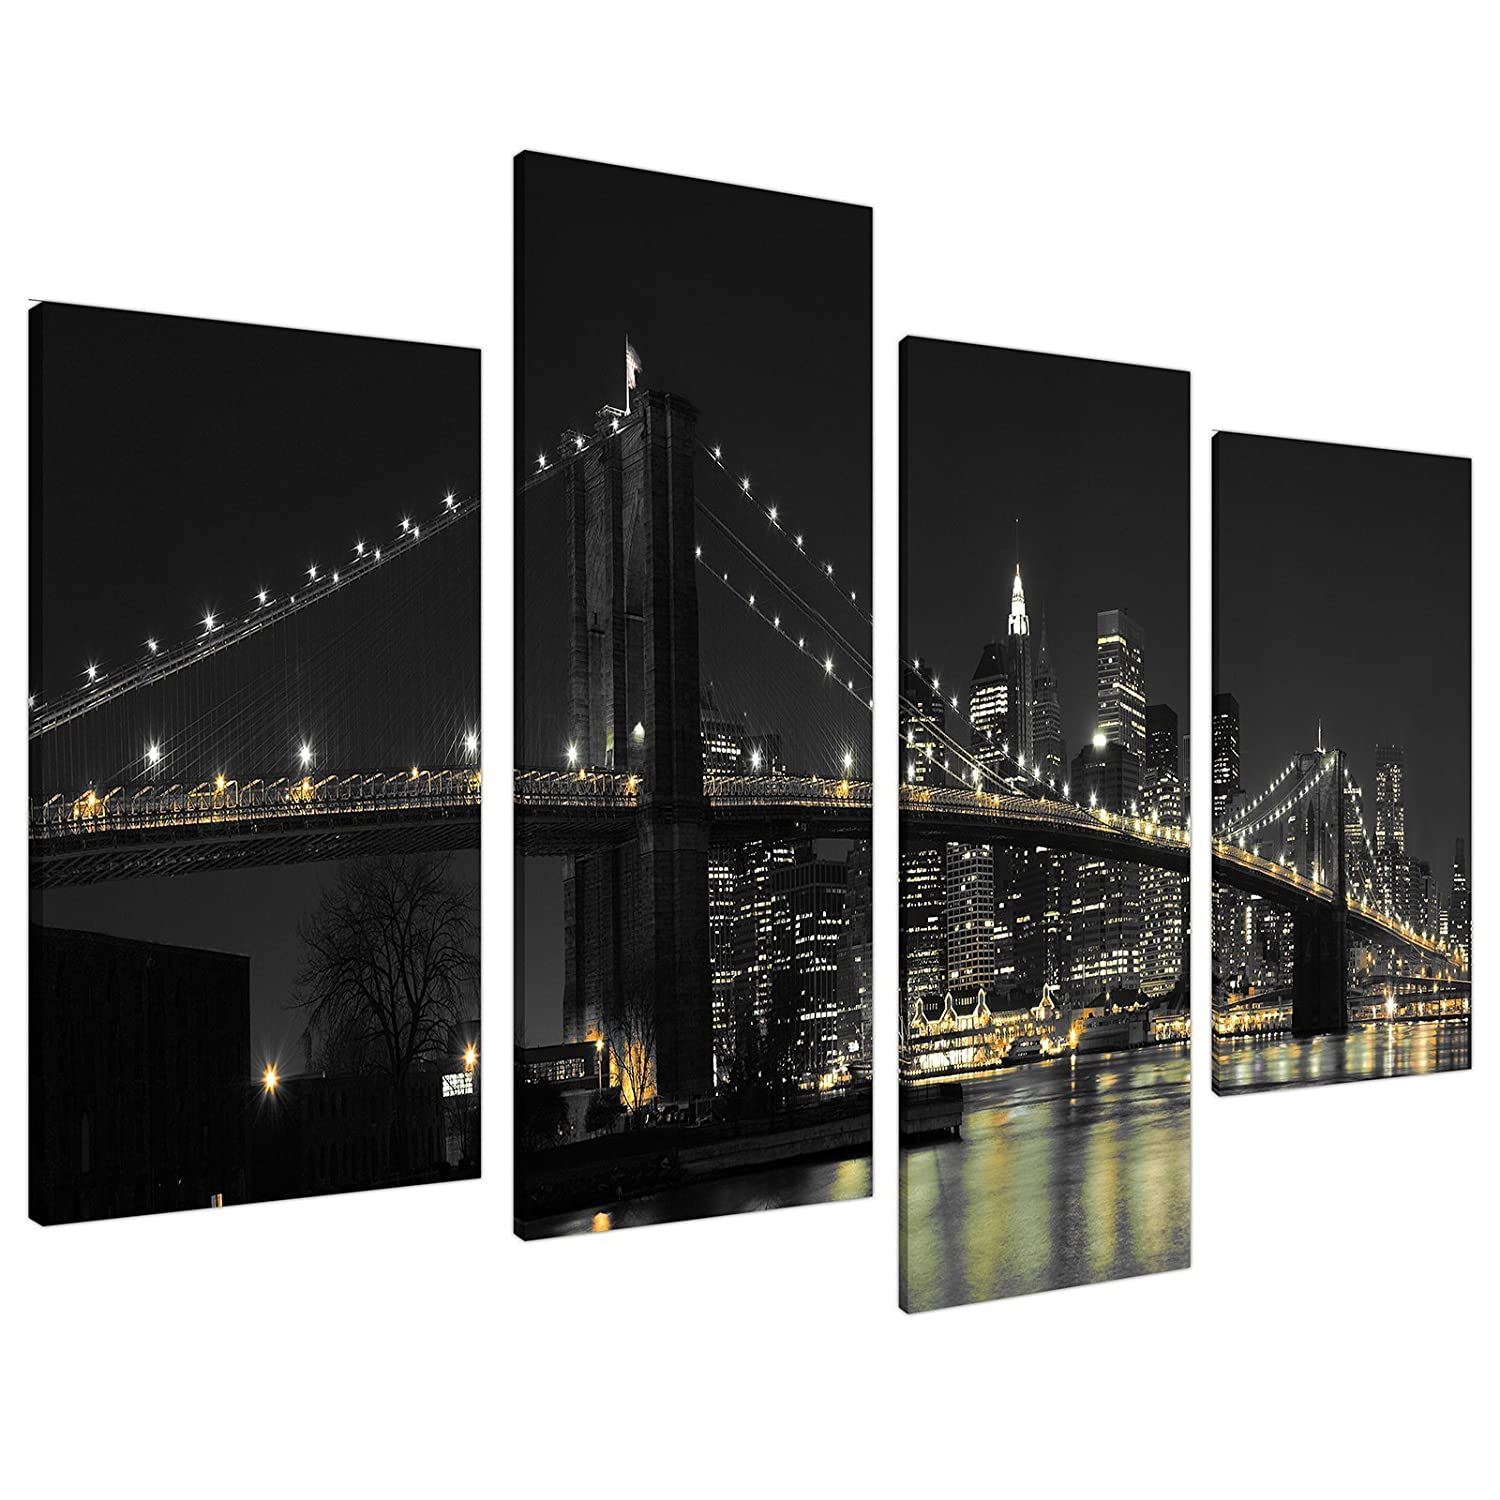 surprising City Wall Art Part - 2: Large New York City Canvas Wall Art Pictures of NYC Skyline in Black White  Set 4 - Big Cityscape of Brooklyn Bridge at Night - Split Multi Panel  Artwork ...